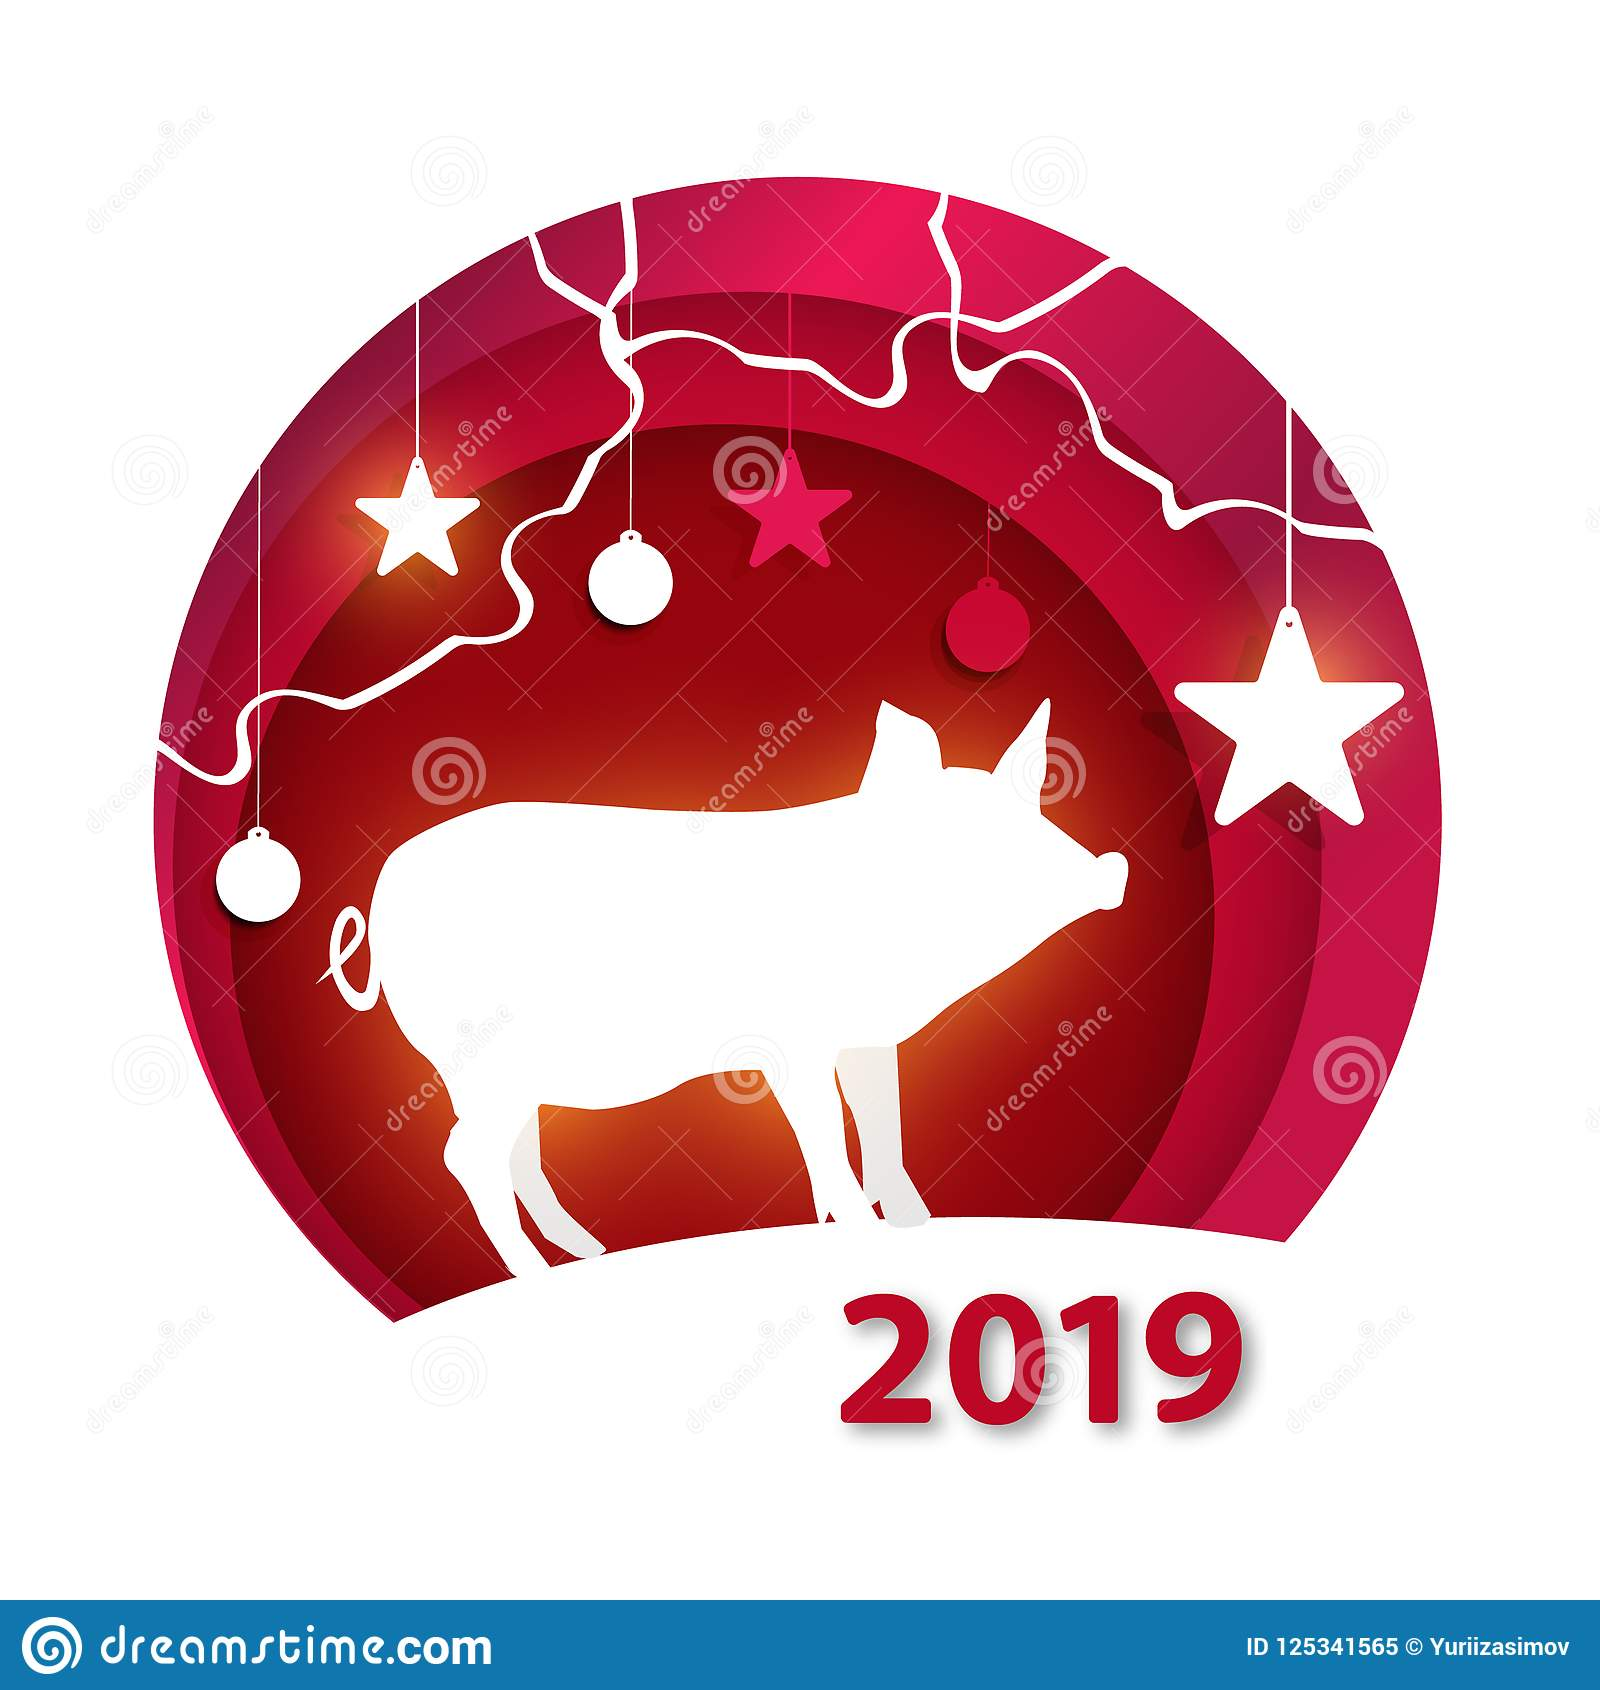 creative happy new year 2019 design happy new year 2019 paper art and craft style happy new year banner with 2019 numbers on bright background